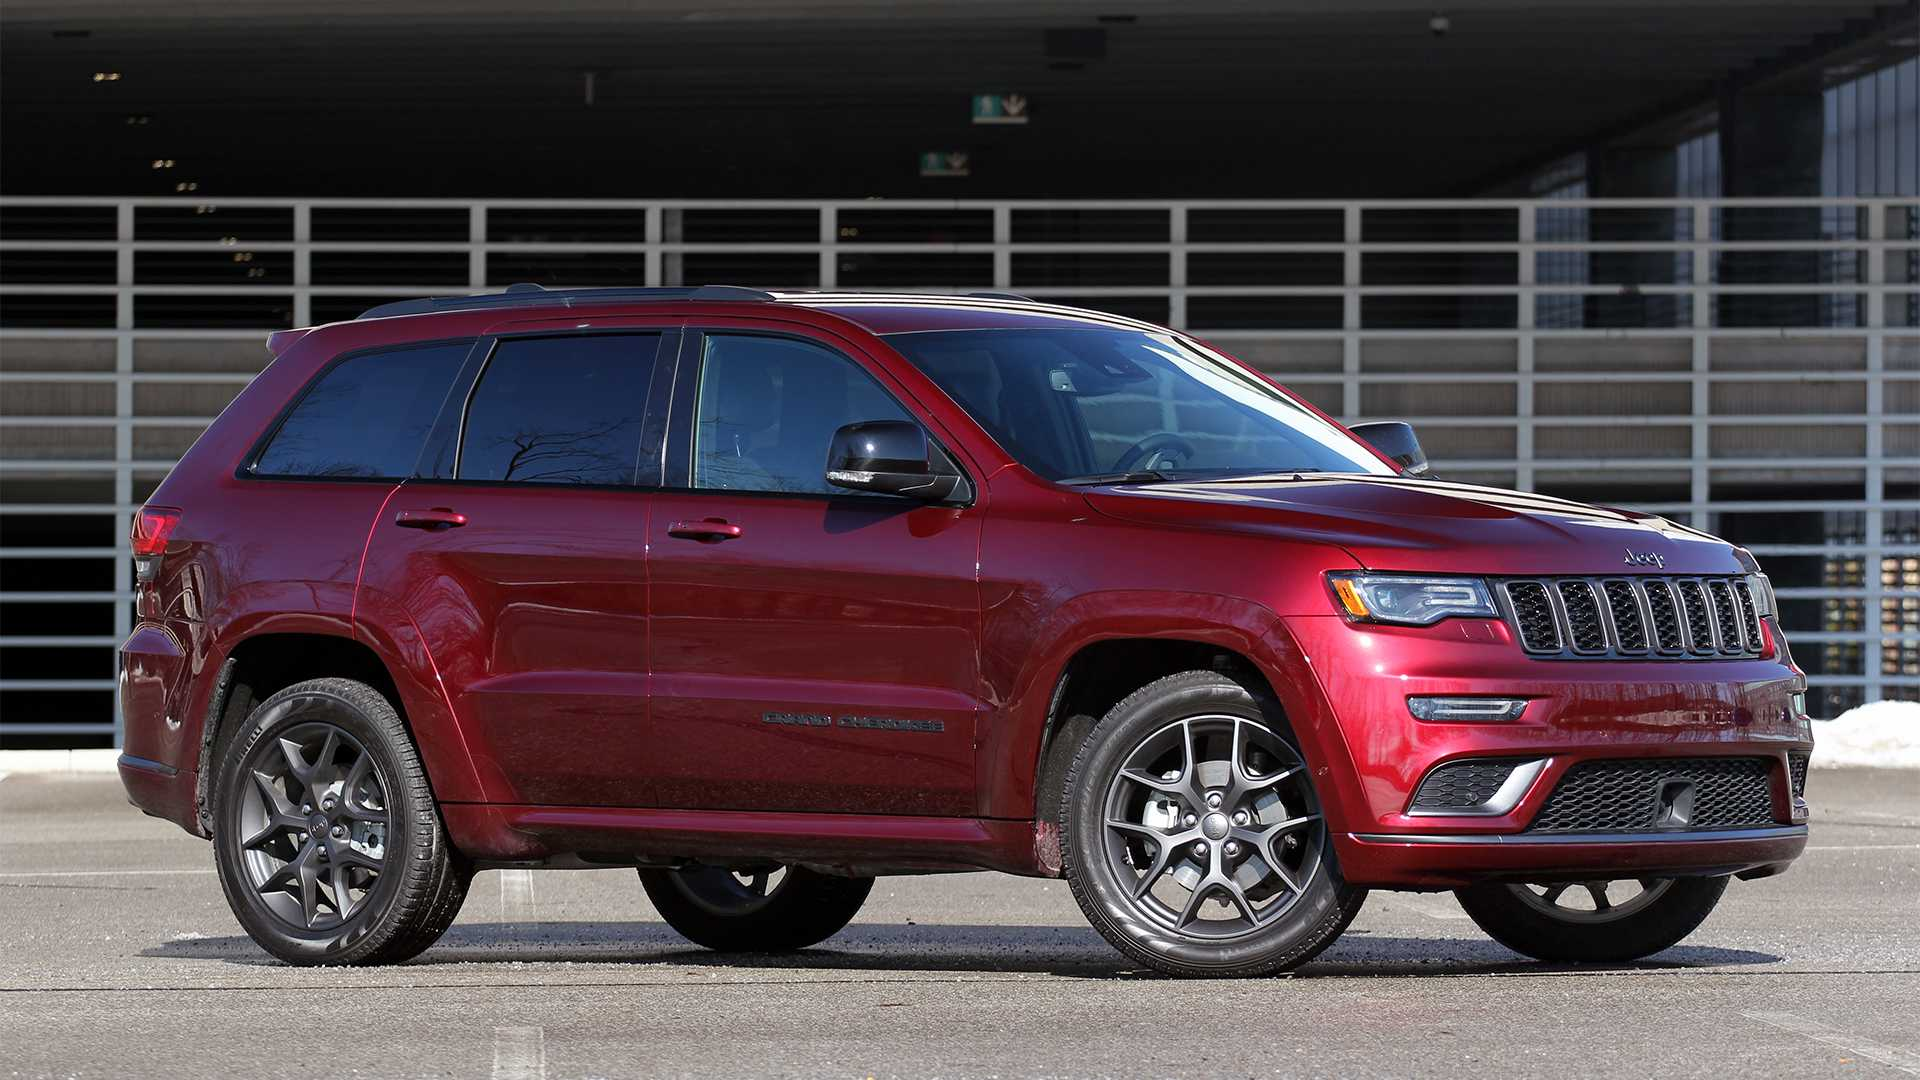 19 All New The Grand Cherokee Jeep 2019 Exterior And Interior Review Release for The Grand Cherokee Jeep 2019 Exterior And Interior Review